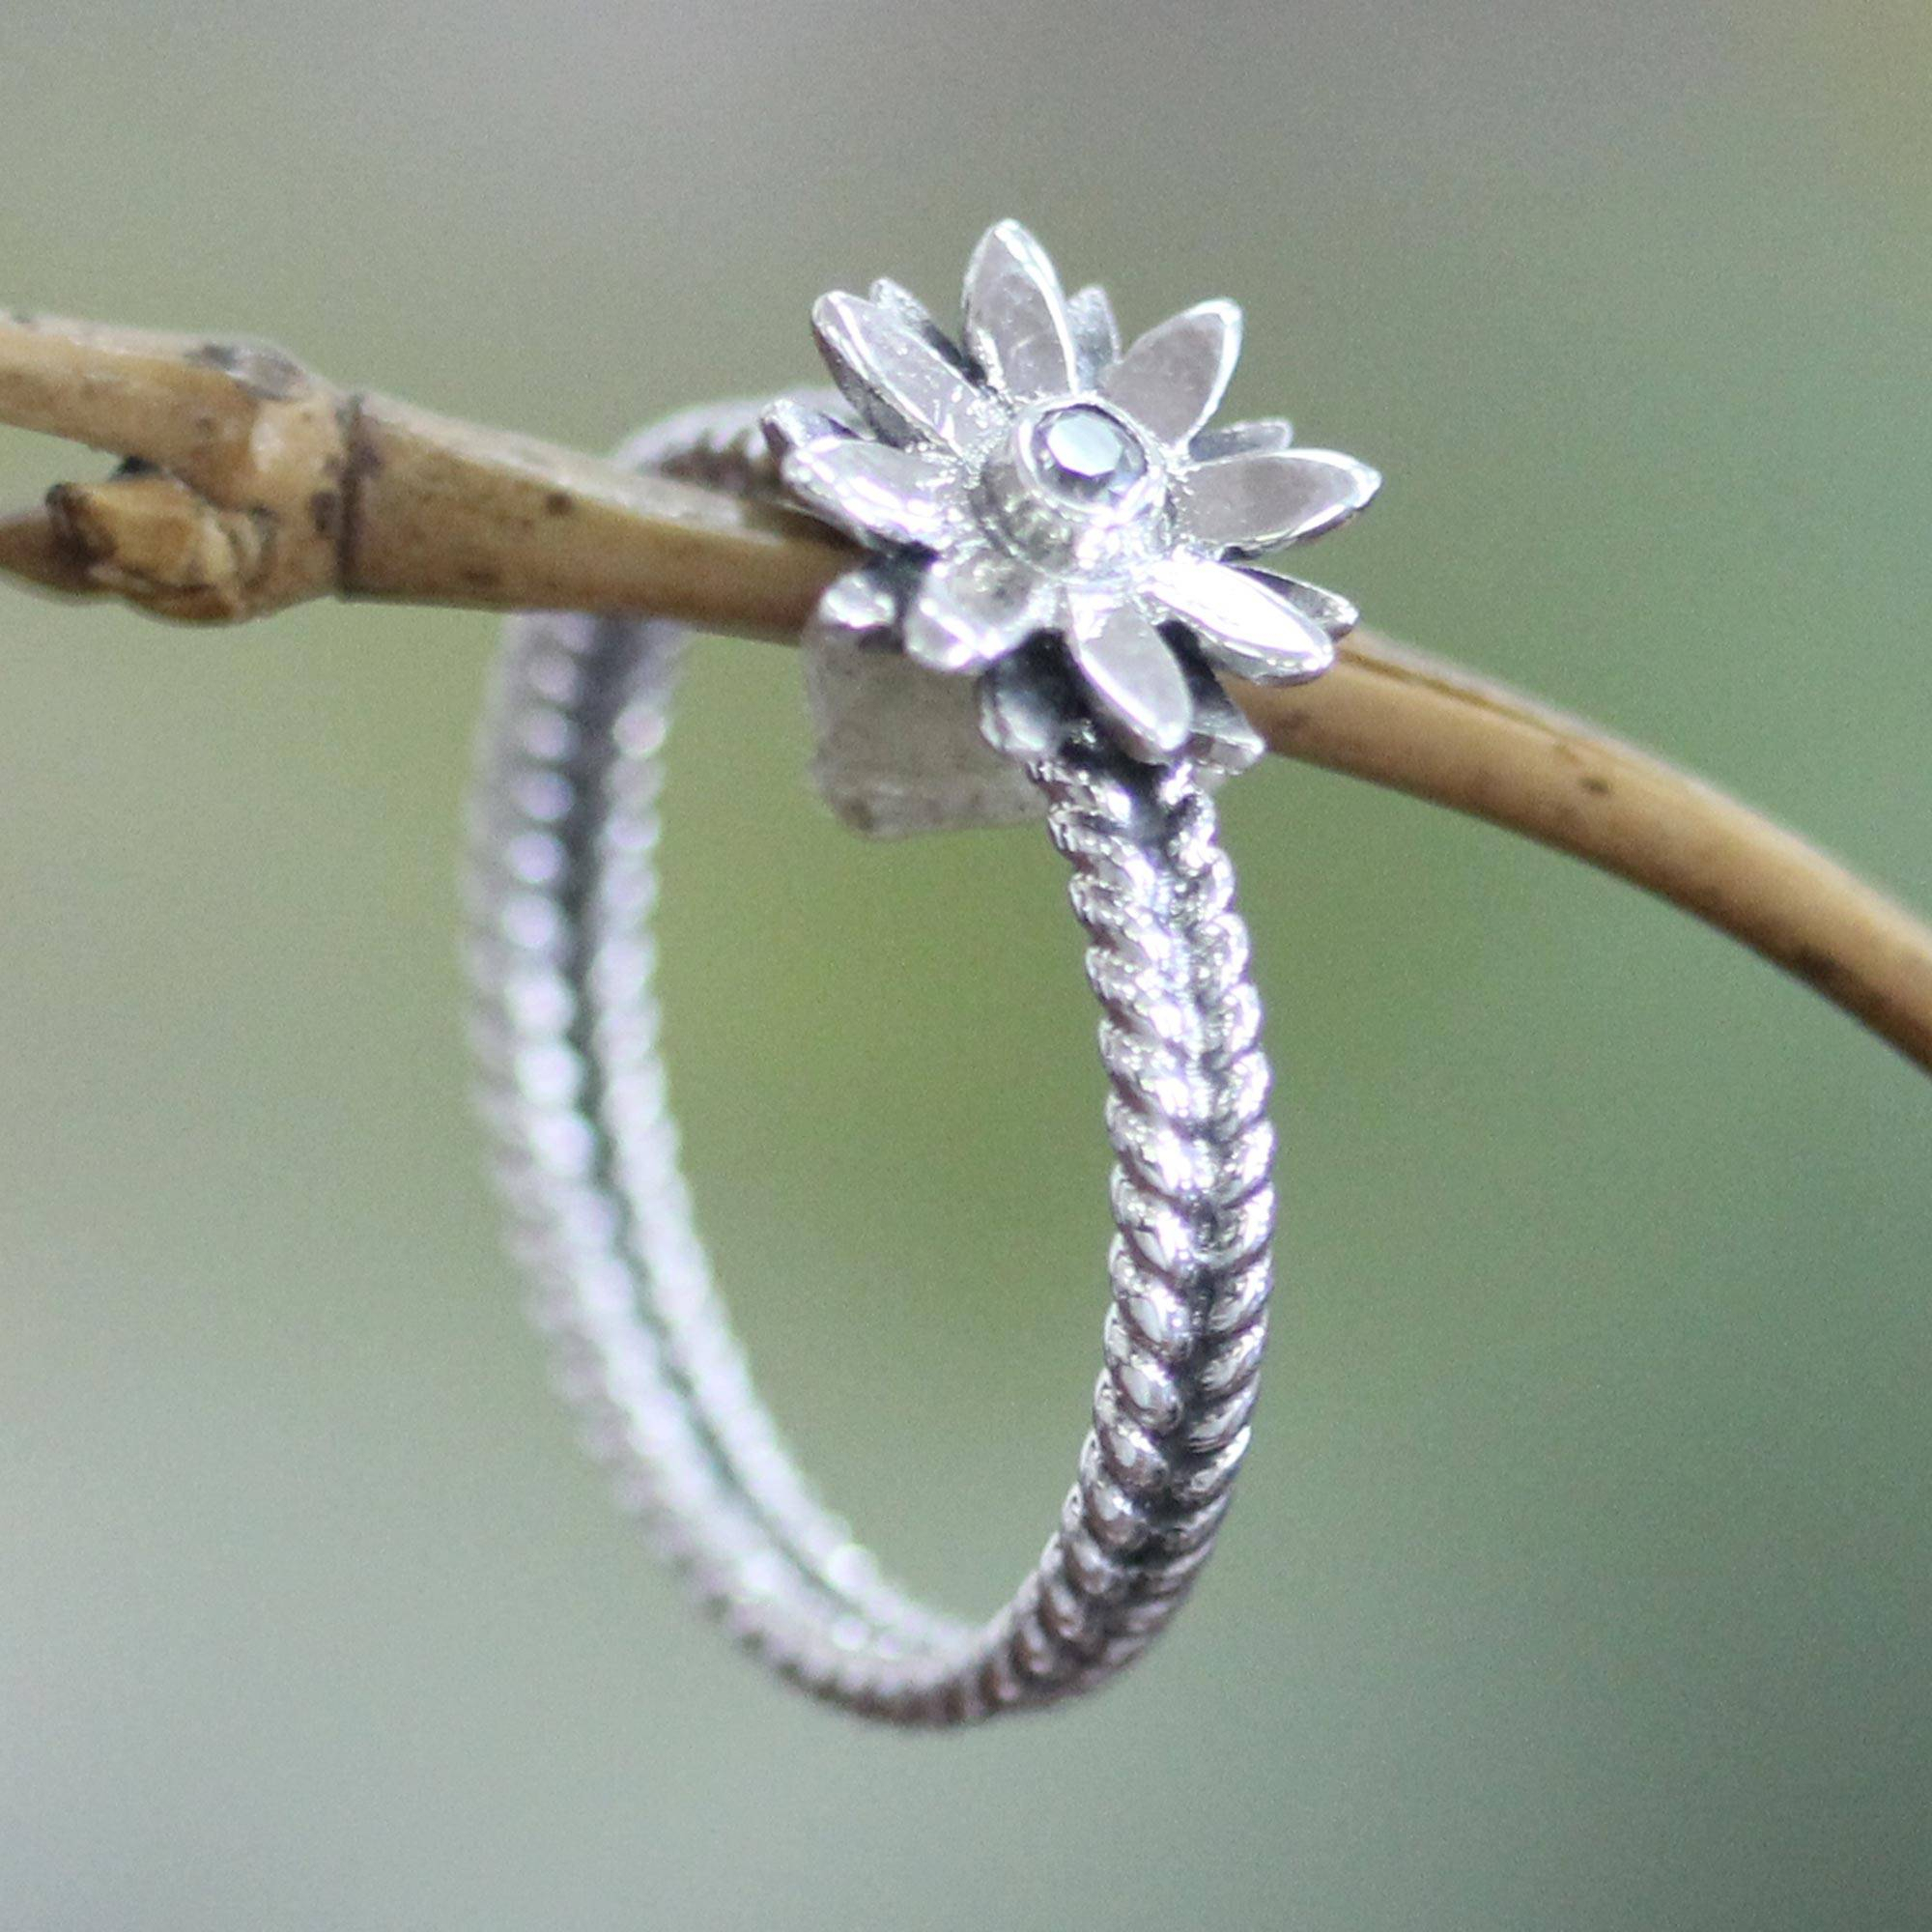 Cubic Zirconia And Sterling Silver Flower Ring, 'april Daisy' With Regard To Most Up To Date Sparkling Daisy Flower Rings (View 14 of 25)